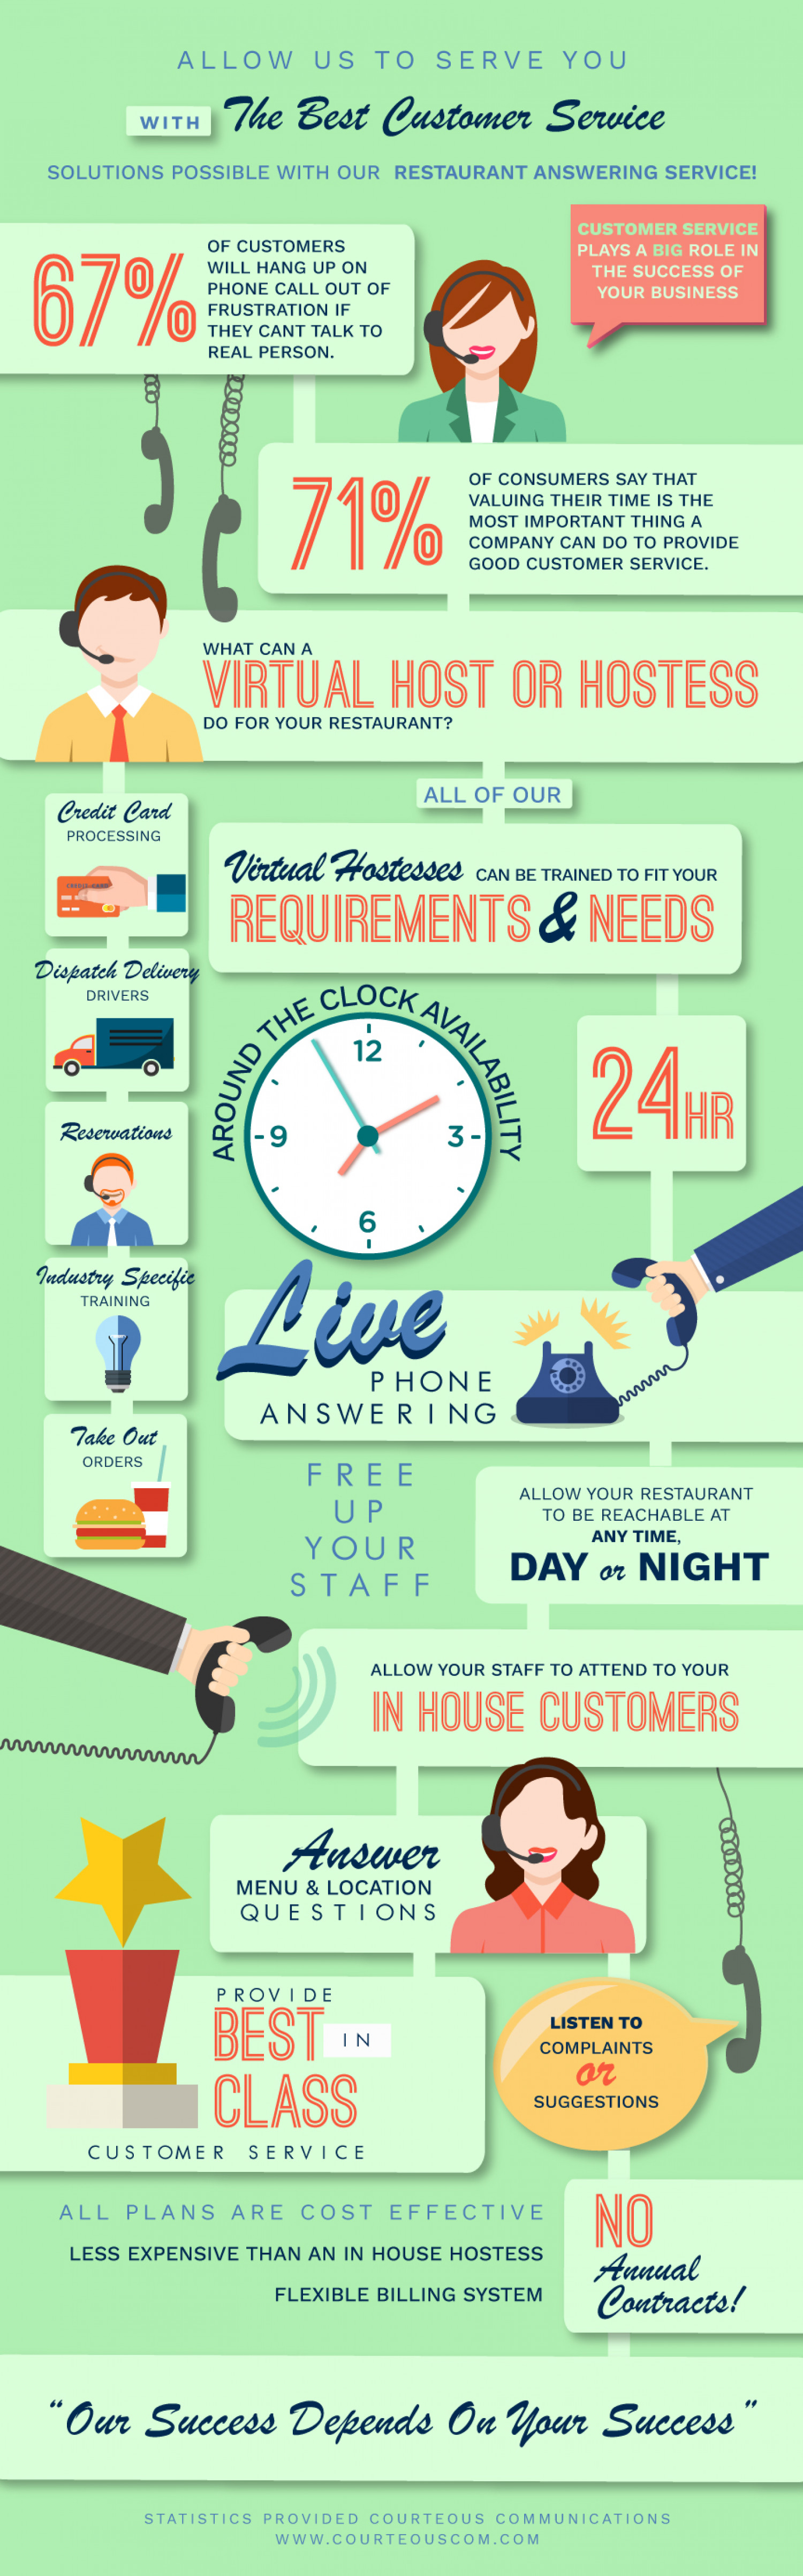 How a restaurant answering service can improve customer service Infographic